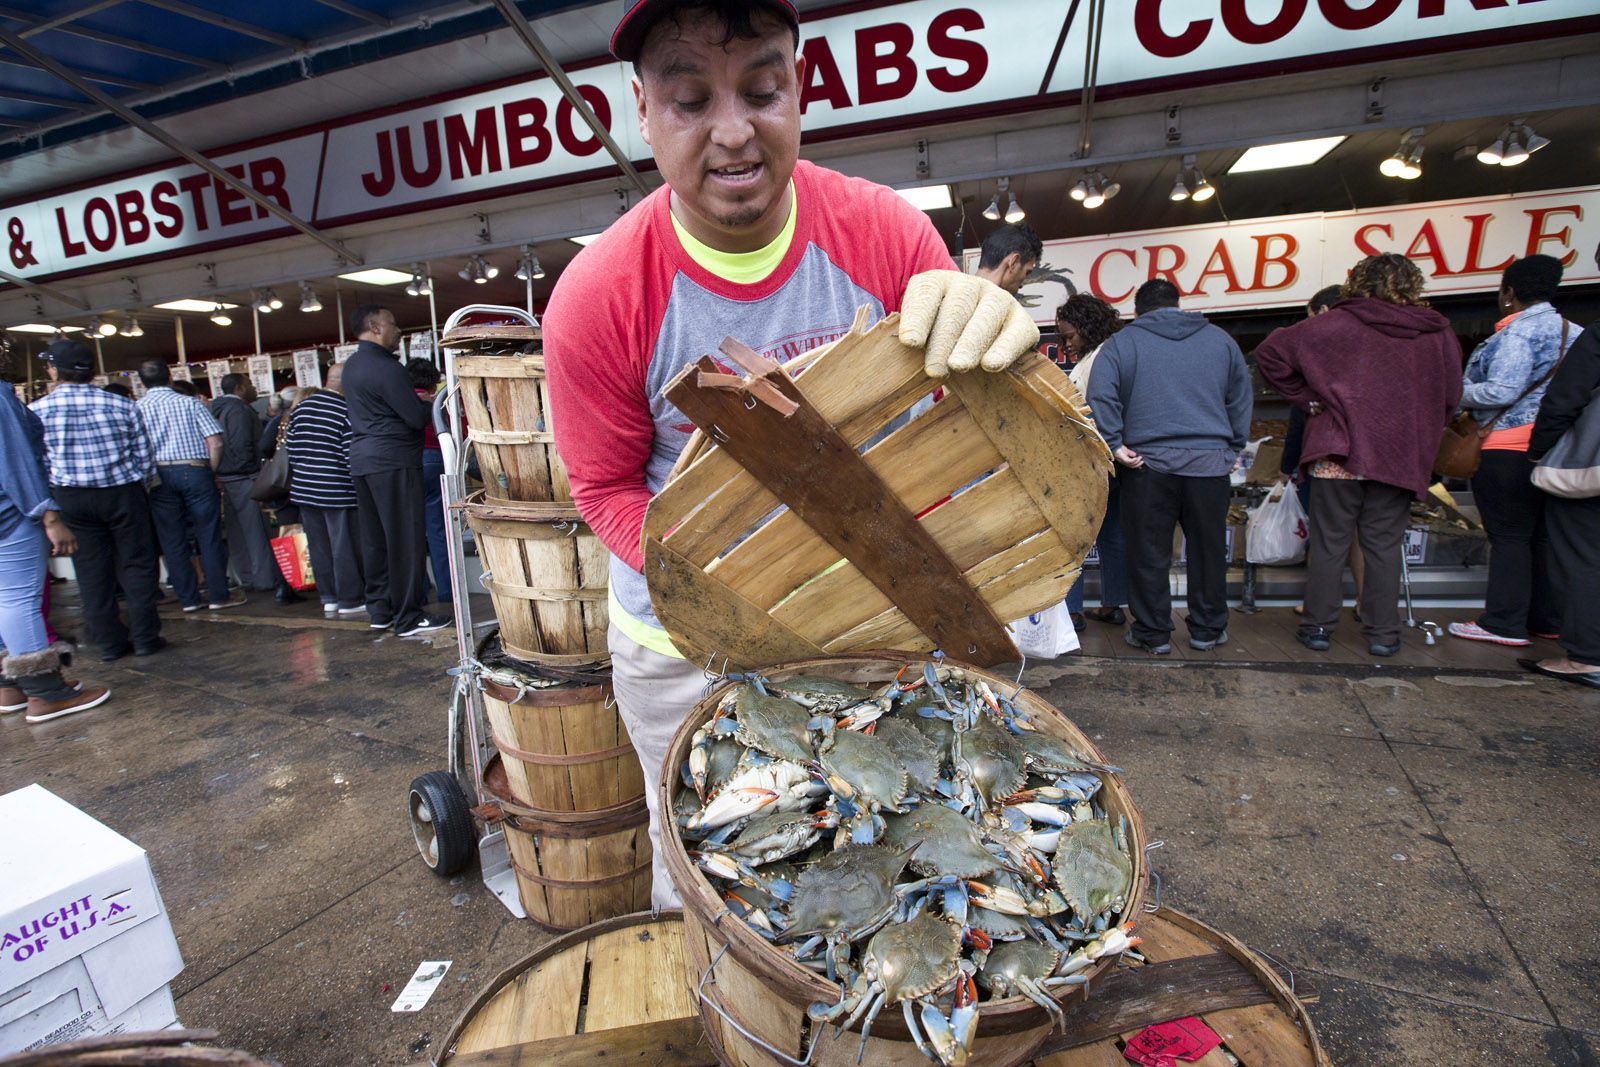 Bings Godoy puts a lid on a basket of crabs at Captain White's Seafood City at the Maine Avenue Fish Market in Washington, Thursday, Dec. 24, 2015, as unseasonably warm temperatures rise into the 70's on Christmas Eve. The open-air market was filled with customers picking out crabs, oysters, shrimp and fish for a traditional Christmas Eve meal.    (AP Photo/J. Scott Applewhite)